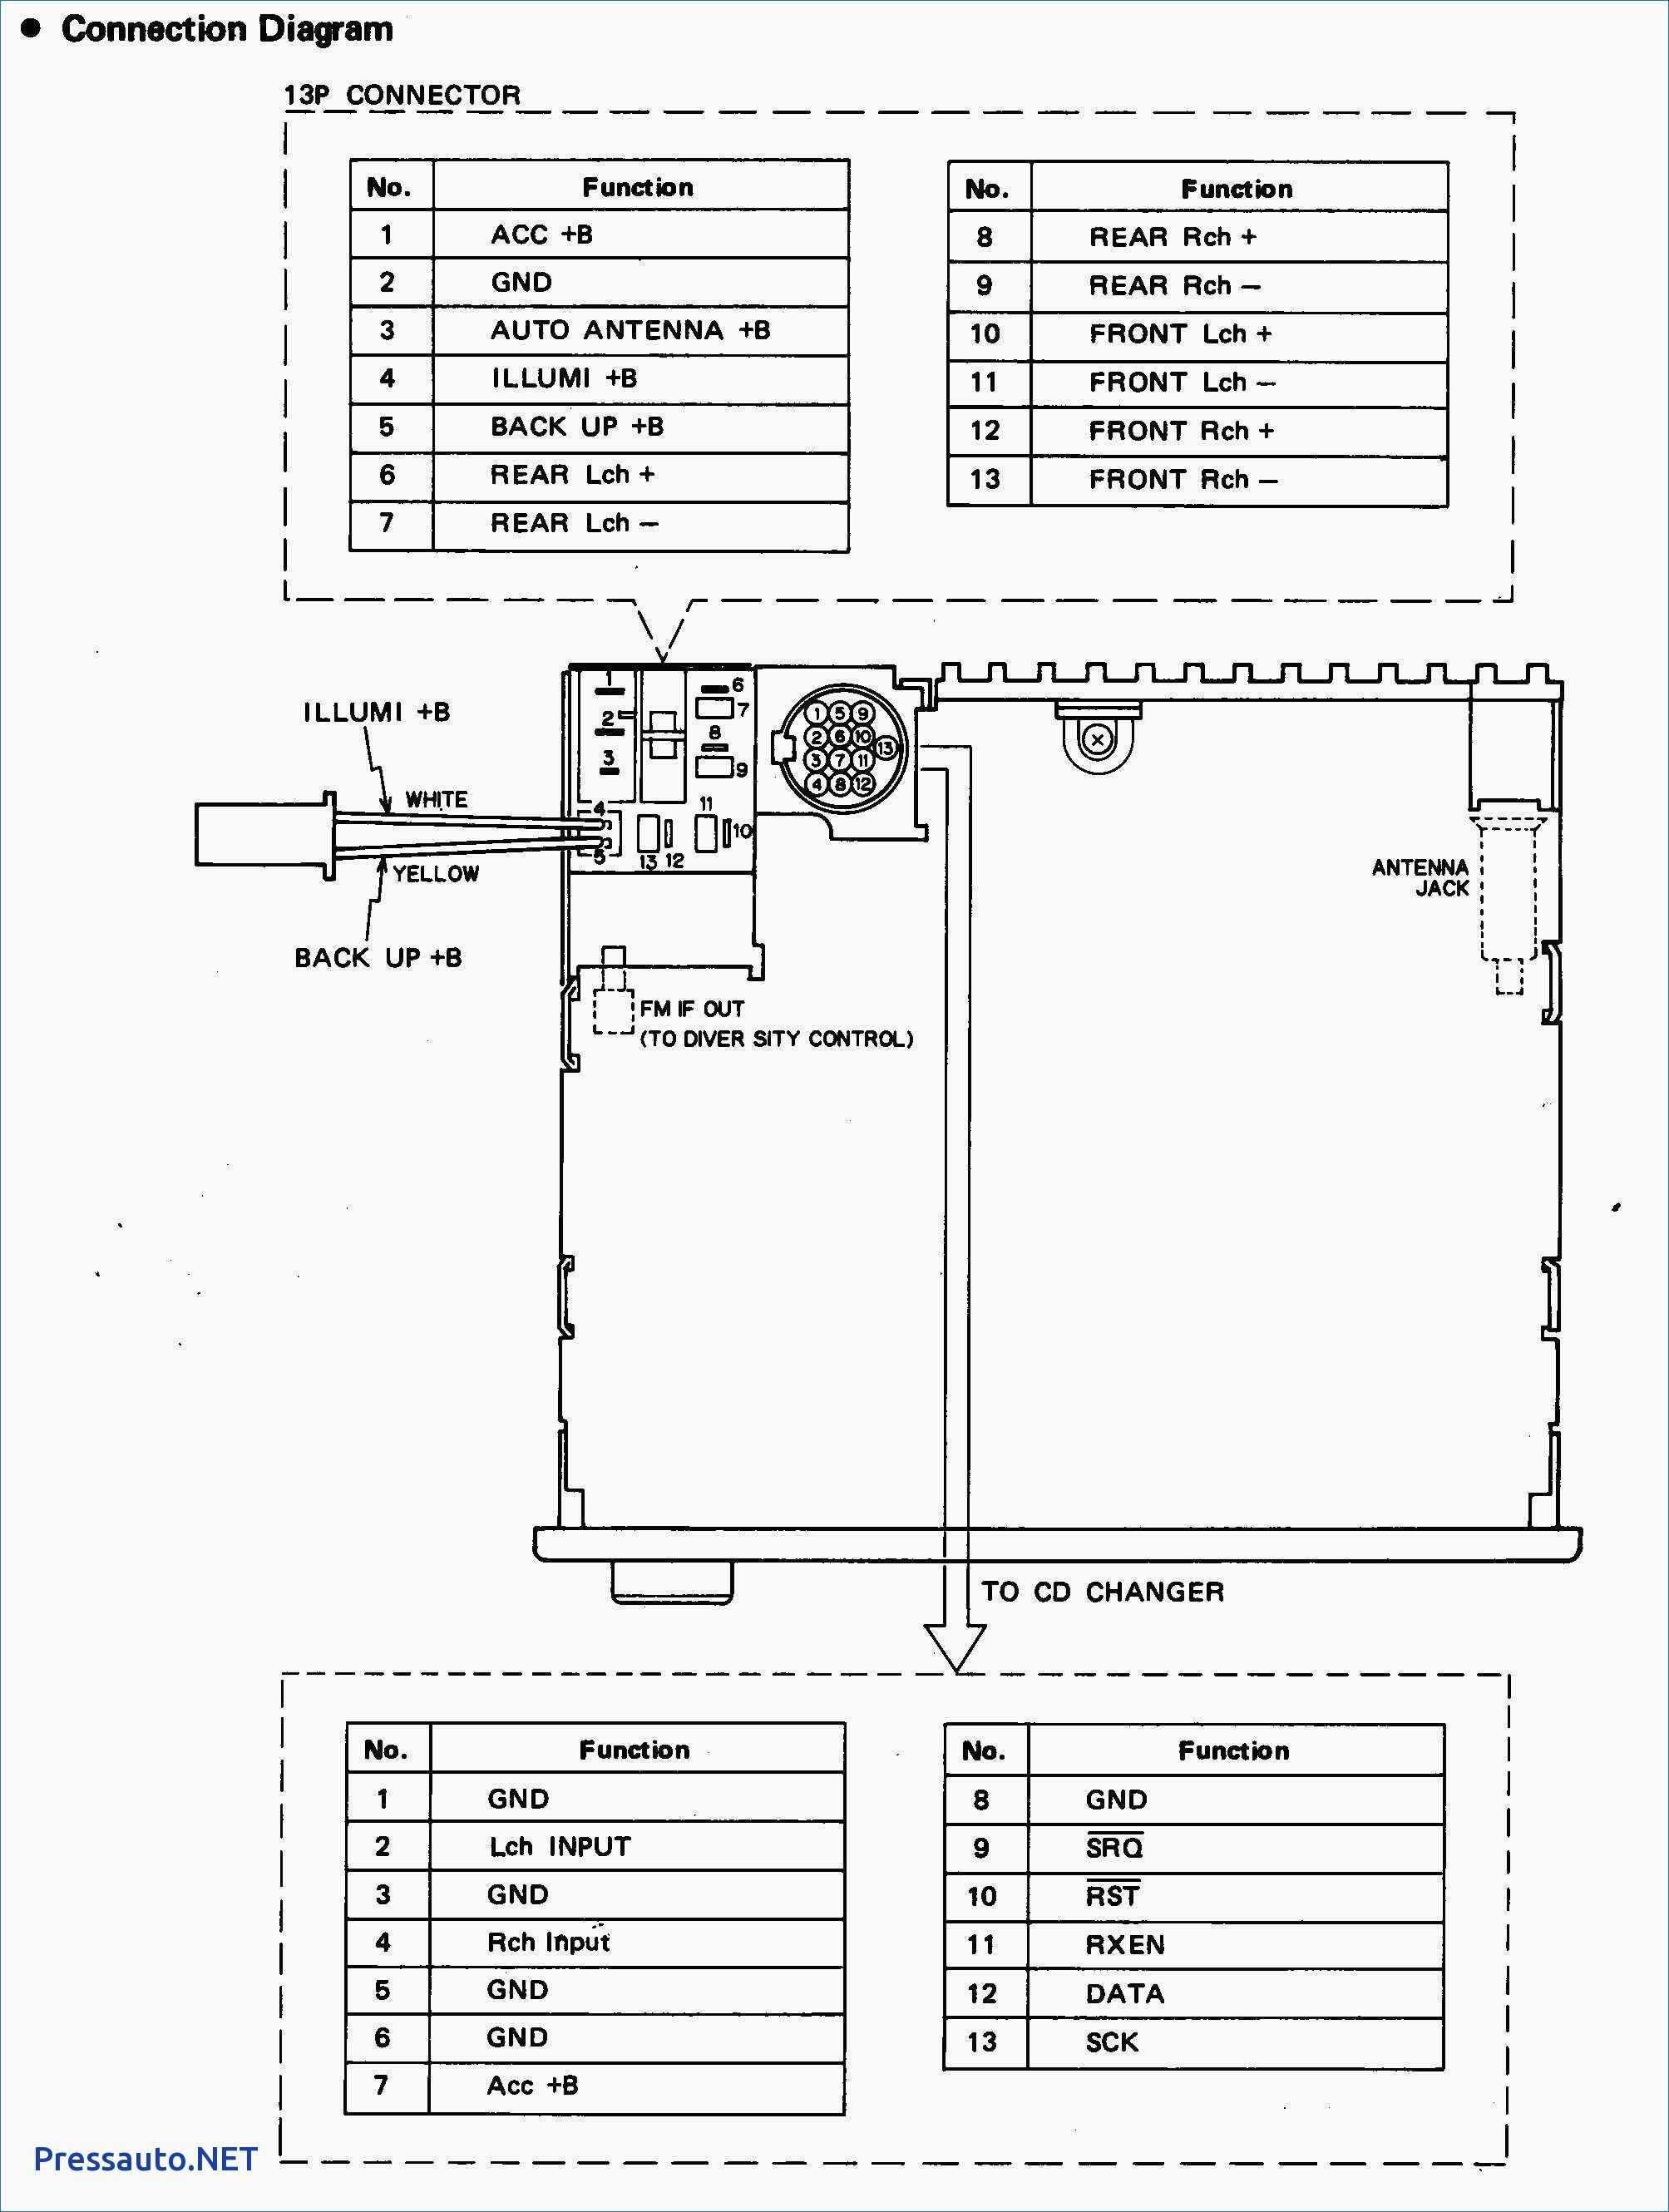 Wiring Diagram For Pioneer Deh X6810Bt - Great Installation Of - Pioneer Wiring Harness Diagram 16 Pin